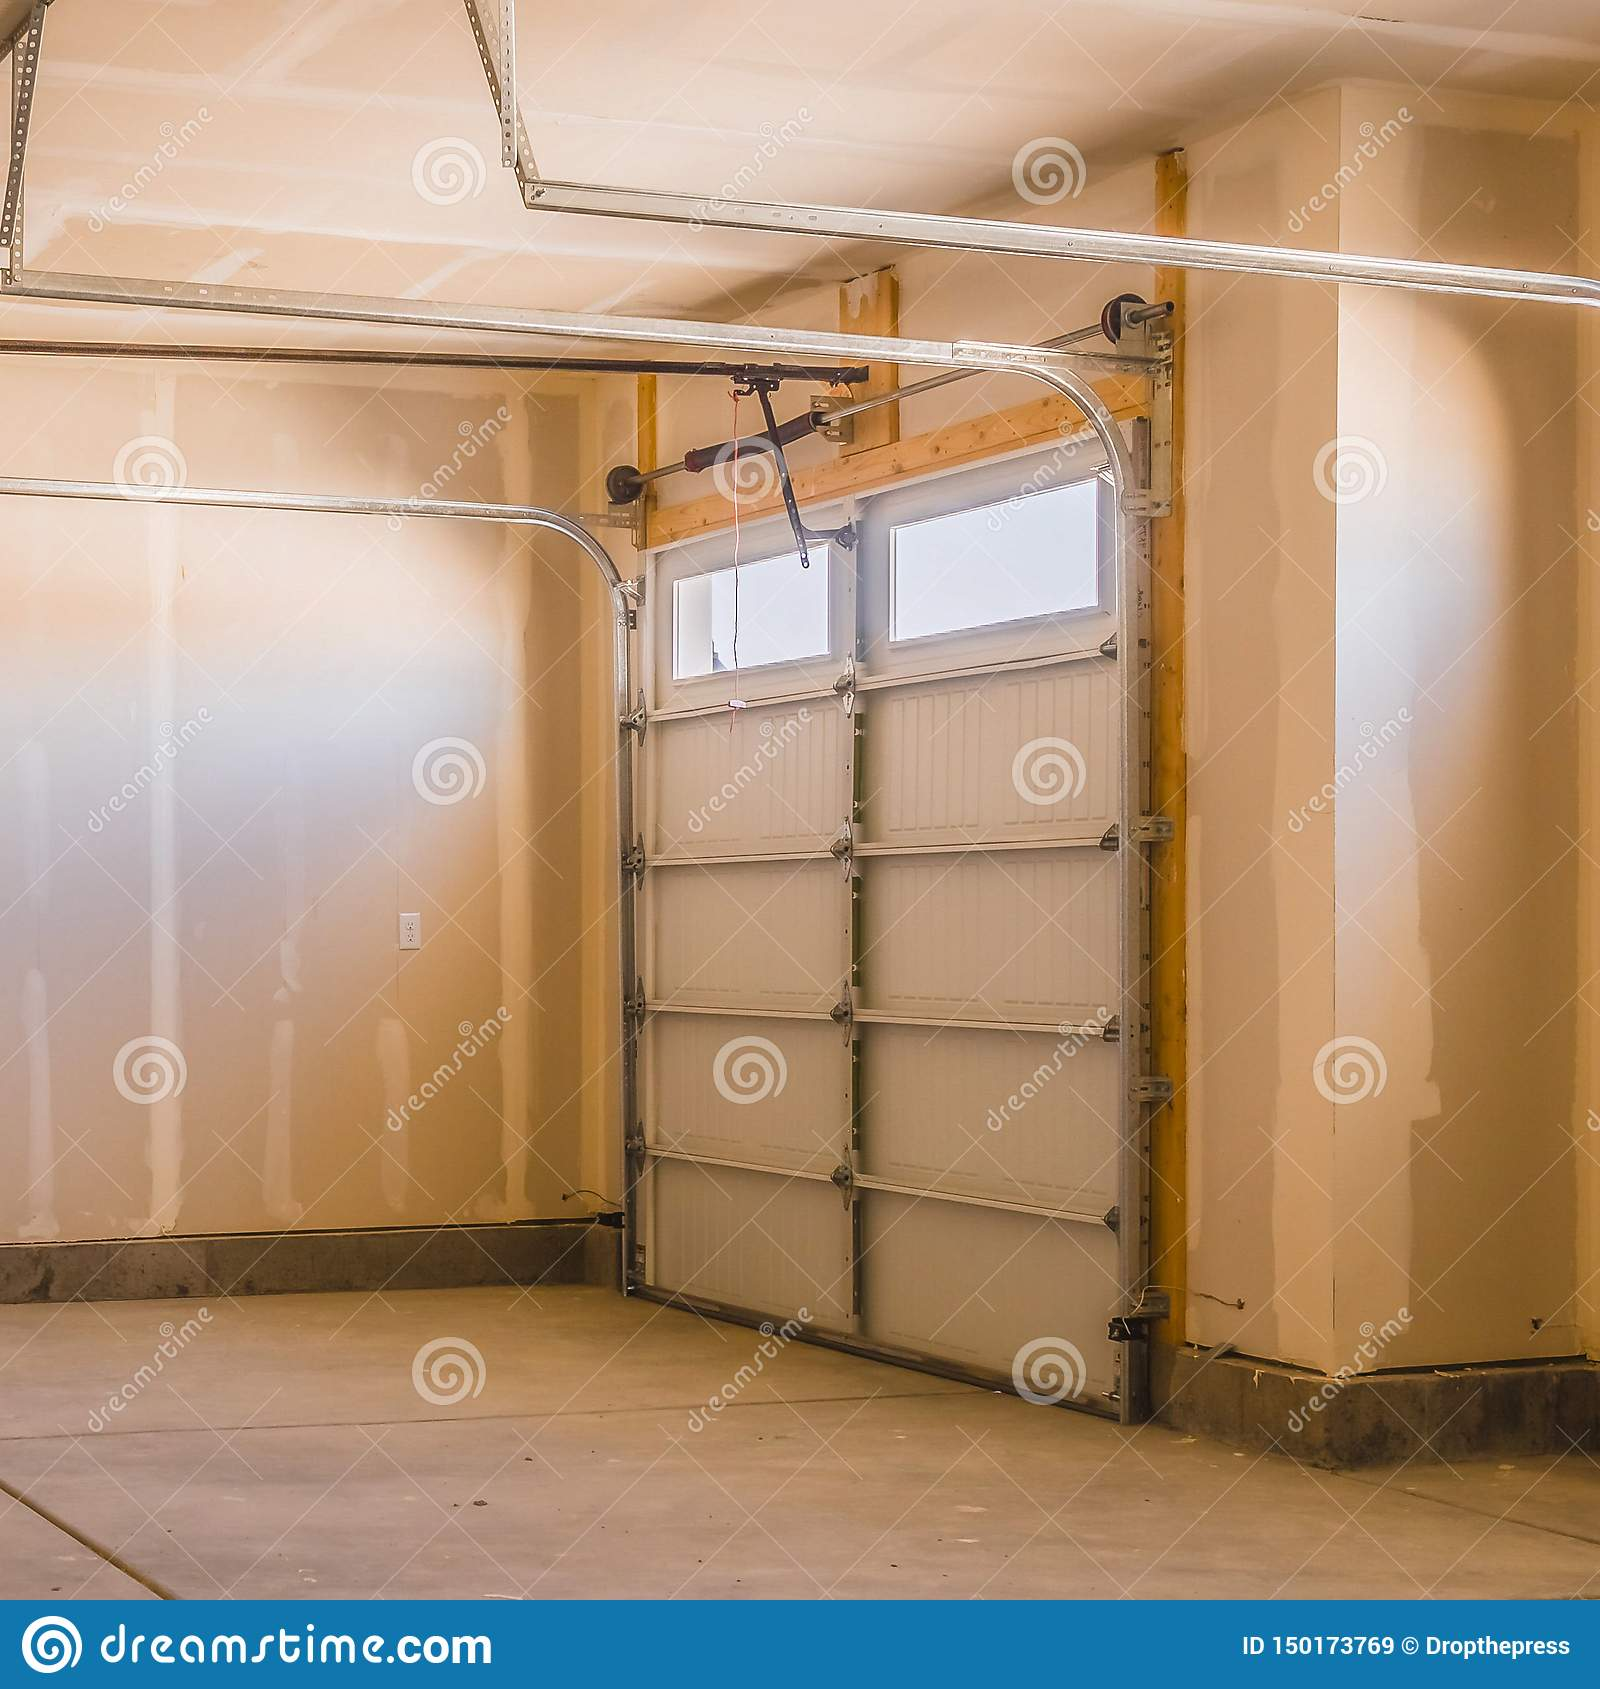 Square Interior Of A Garage Under Construction With Unfinished Walls Stock Image Image Of Home Inside 150173769